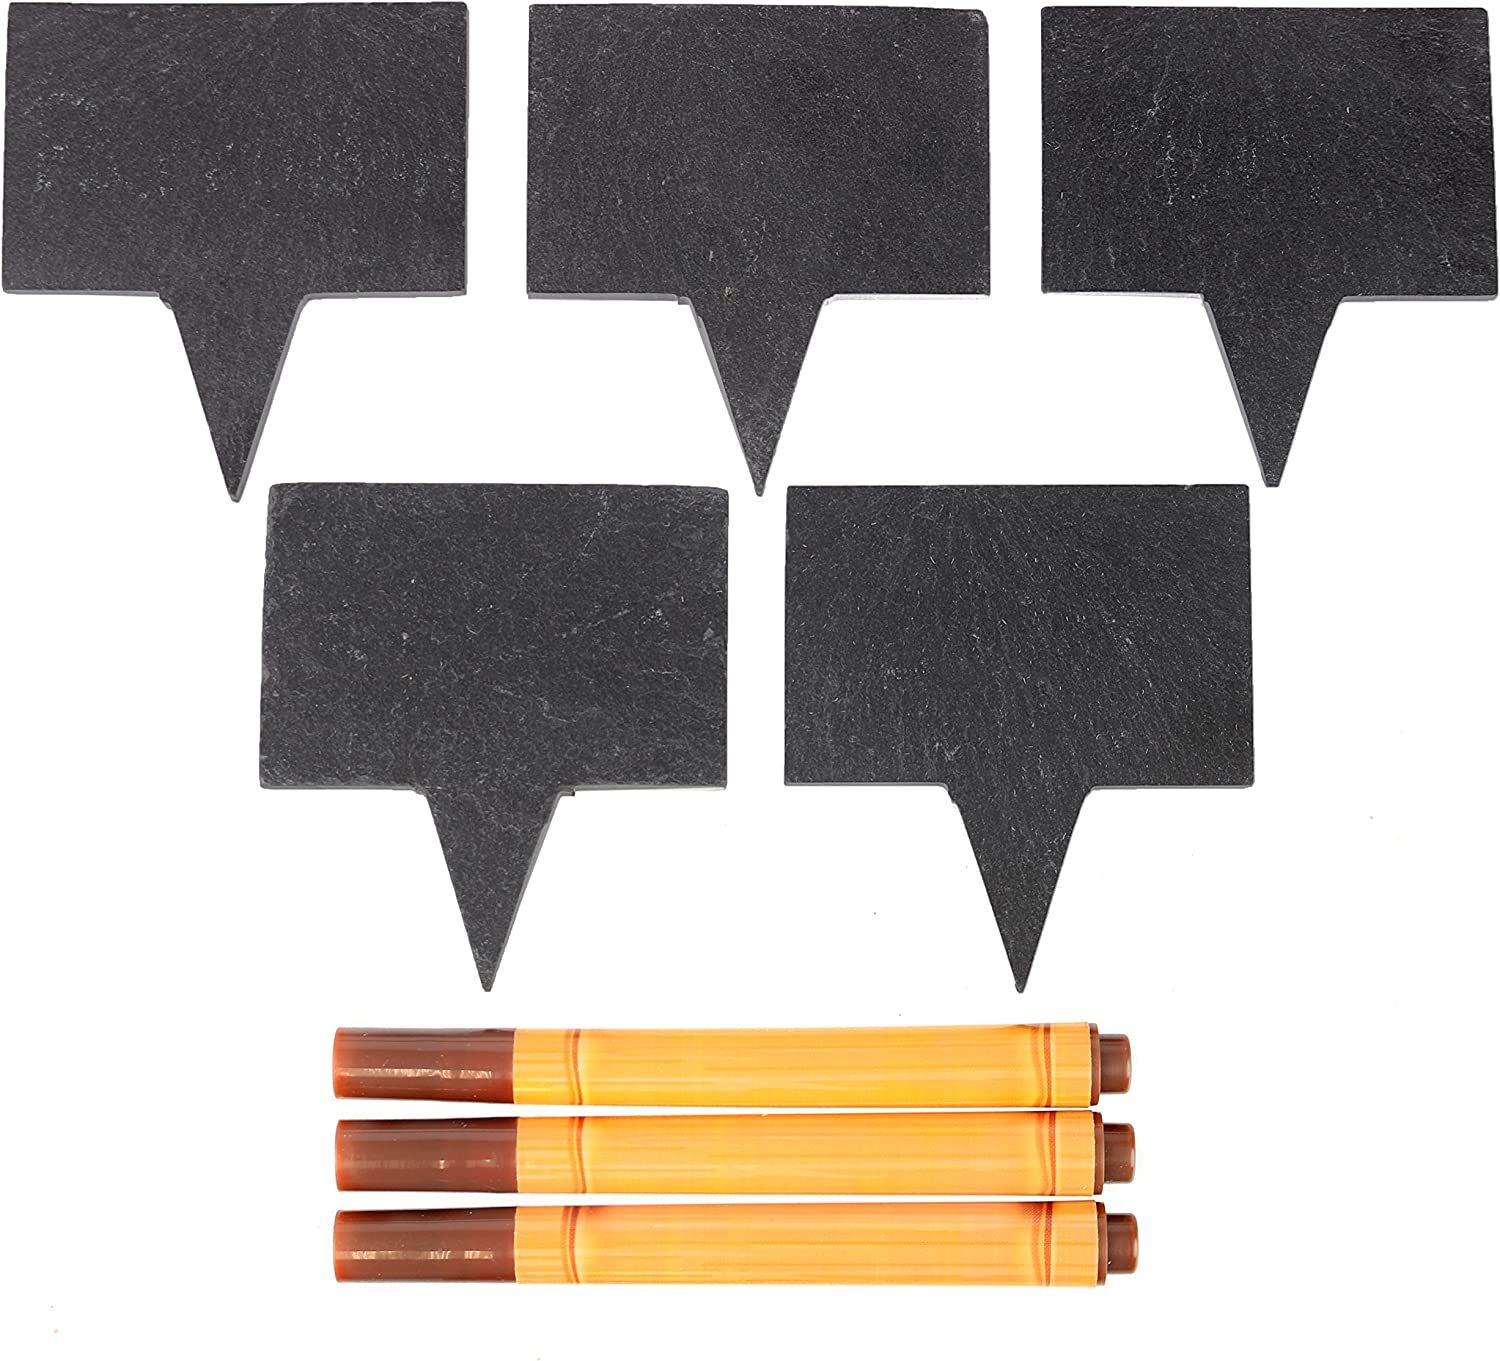 Food-Grade Max 72% OFF Slate Labels with Markers Natural 5 Boards Max 45% OFF - An